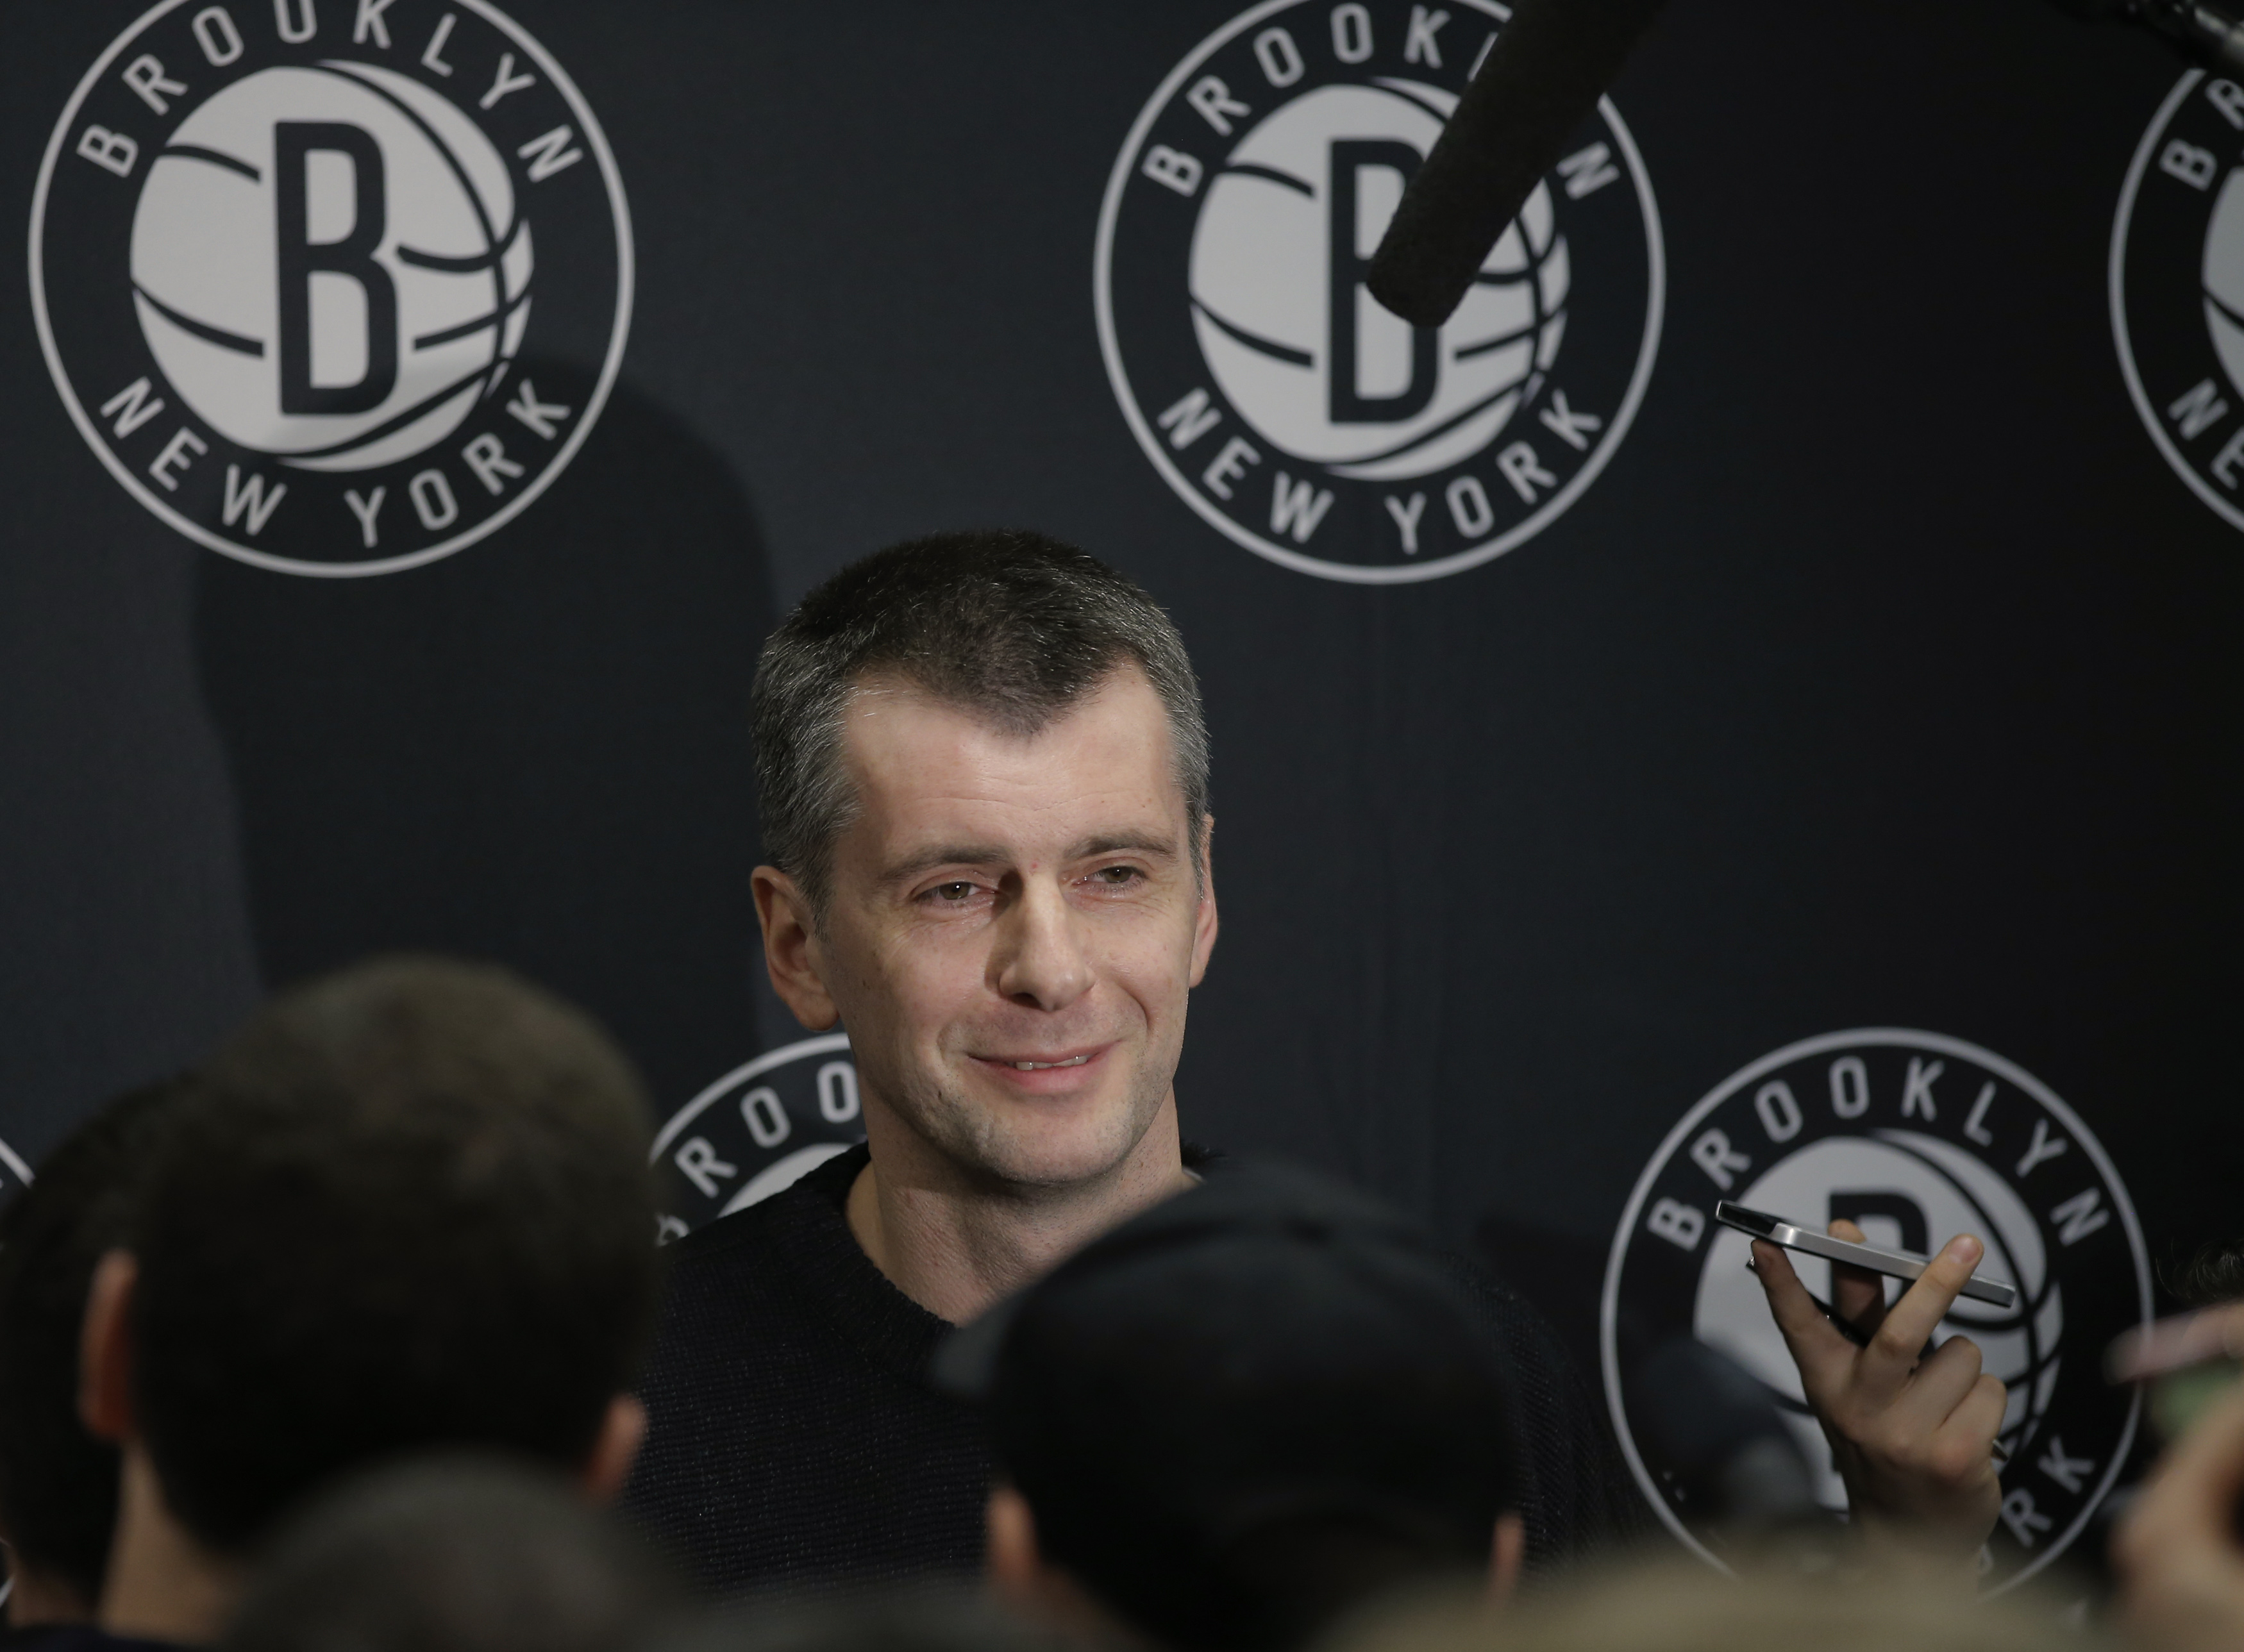 Brooklyn Nets owner Prokhorov talks with the media about his decision to fire head coach Johnson, at half time of their NBA basketball game with the Charlotte Bobcats in New York